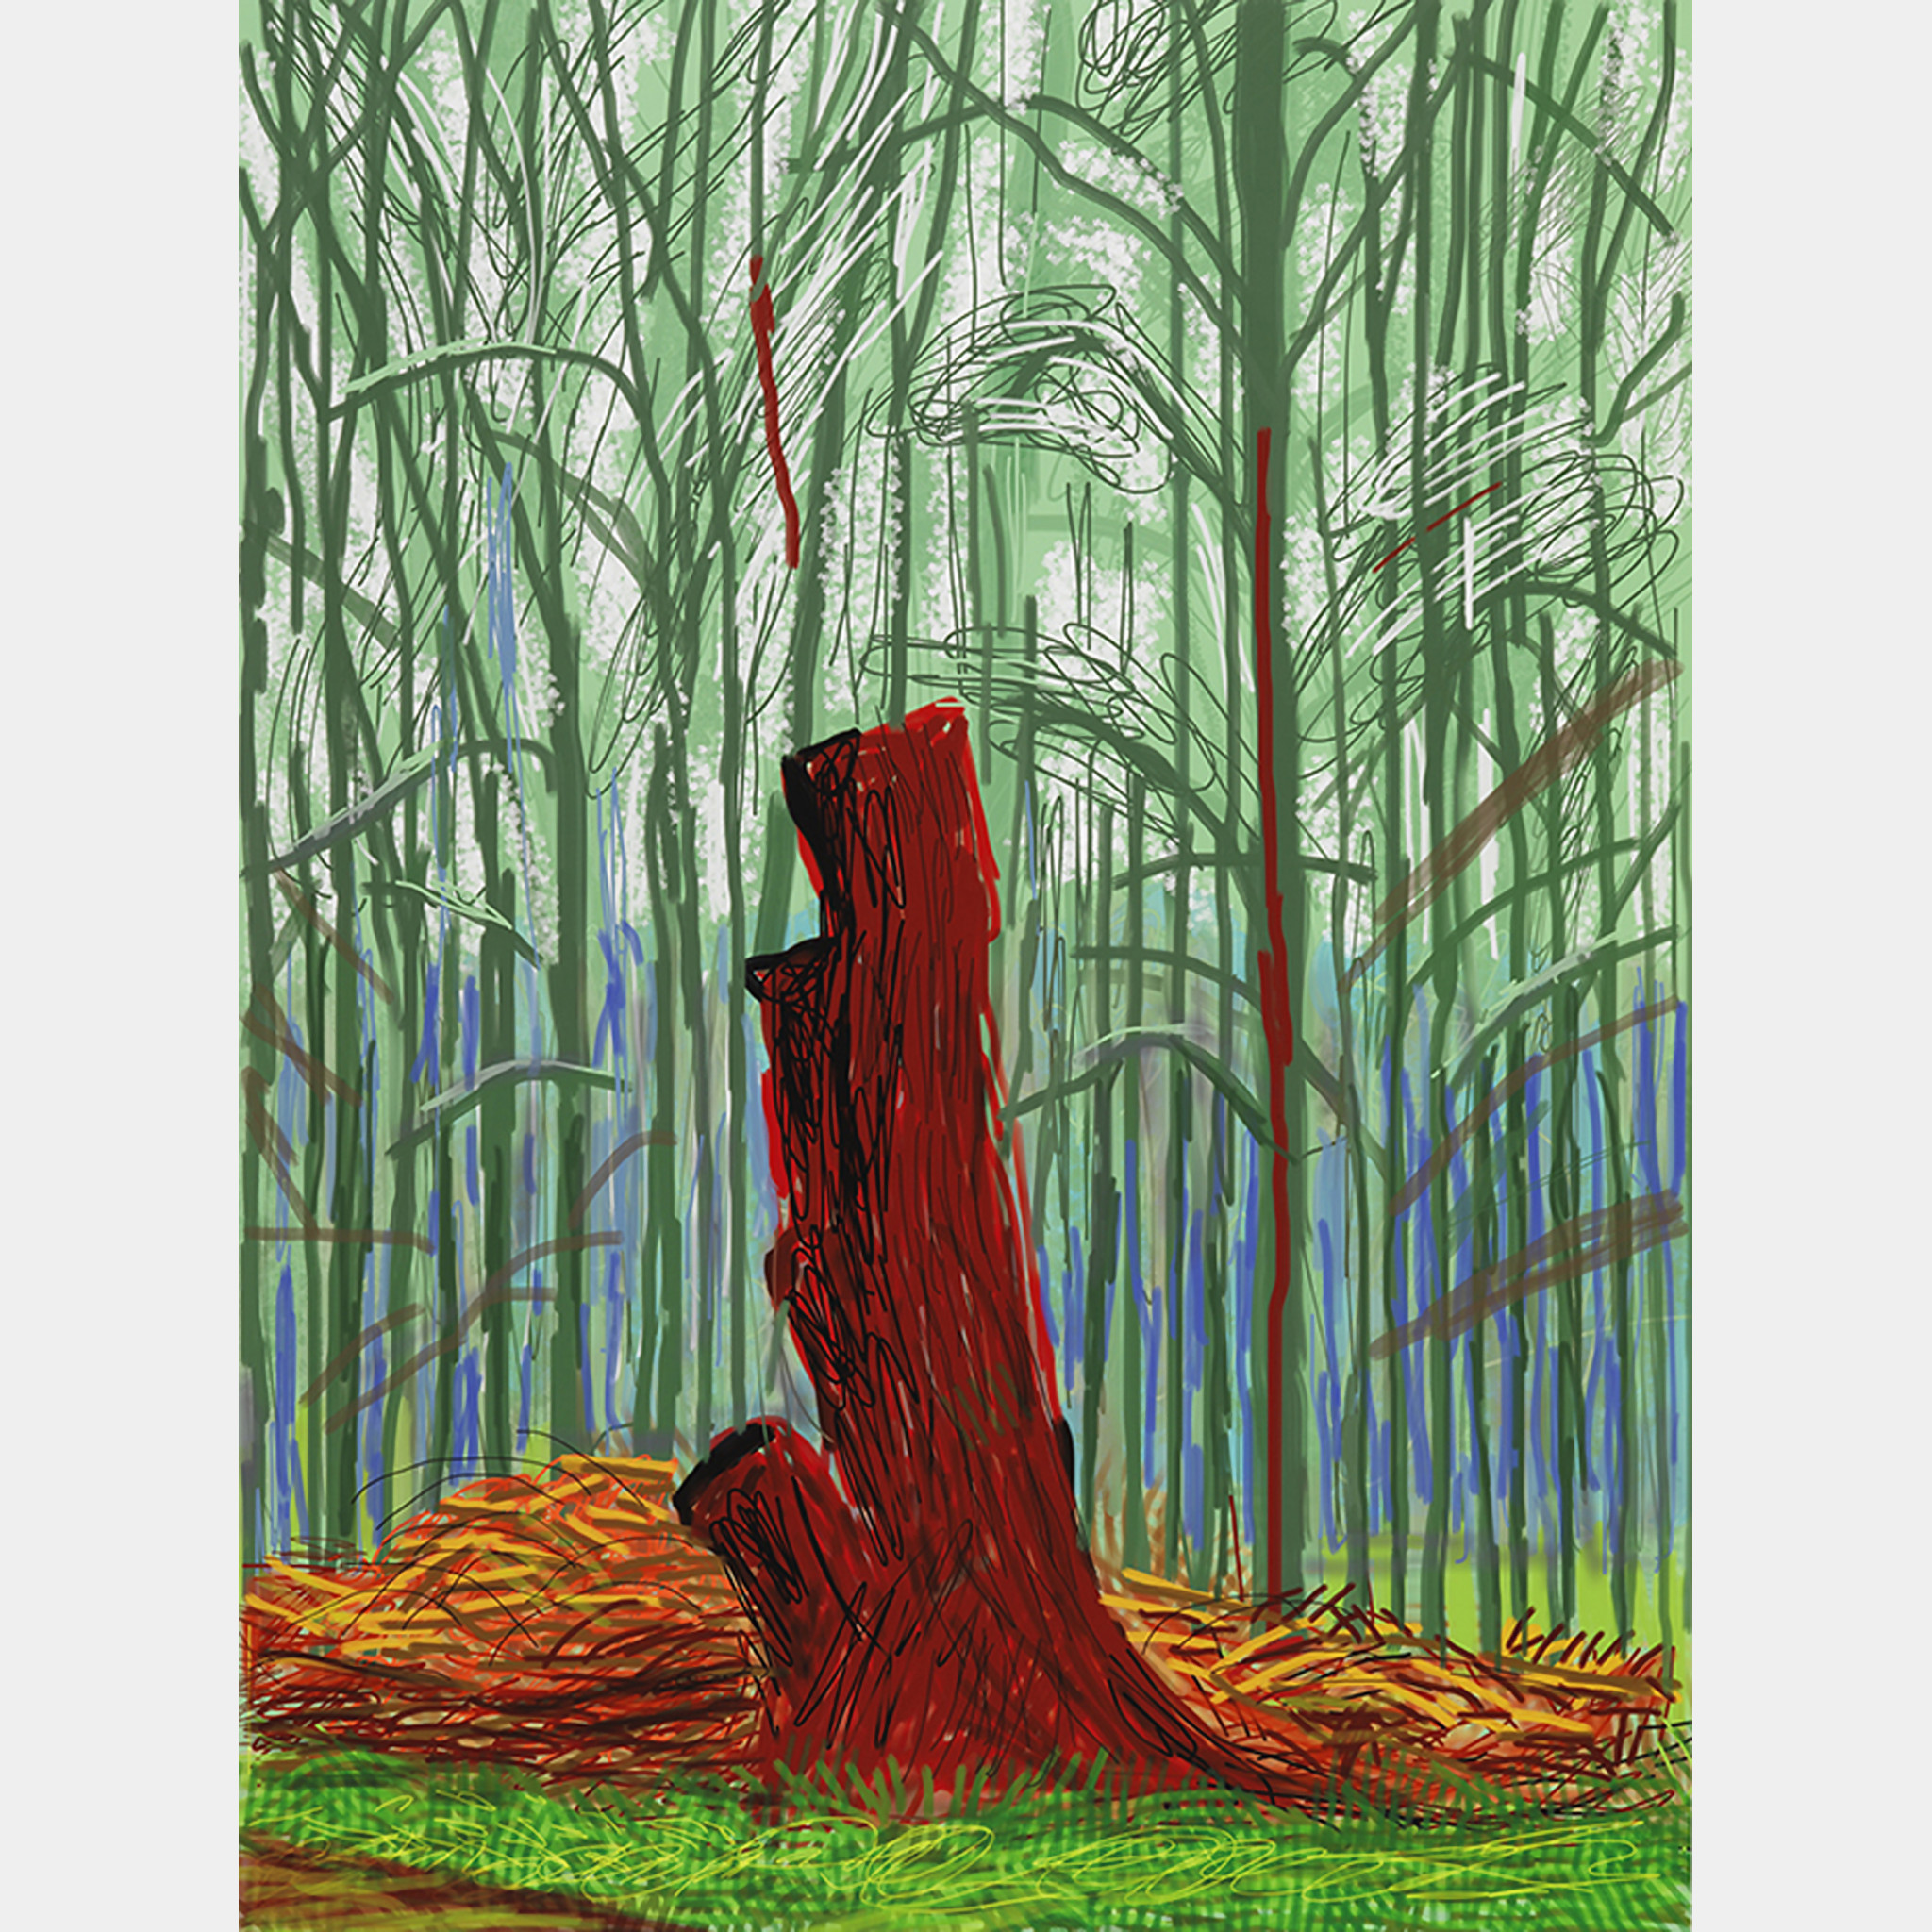 David Hockney, The Arrival of Spring in Woldgate, East Yorkshire in 2011 (twenty eleven),  25 February, 2011,  iPad drawing printed on paper.jpg